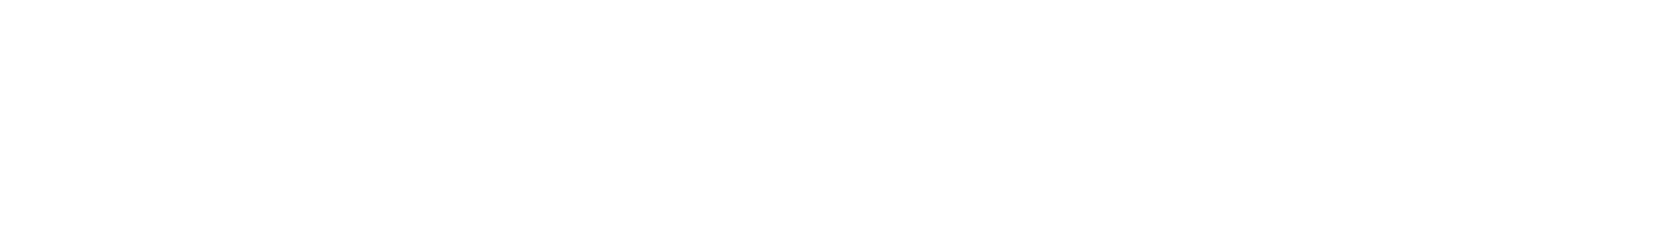 business_today_logo_white-1.png